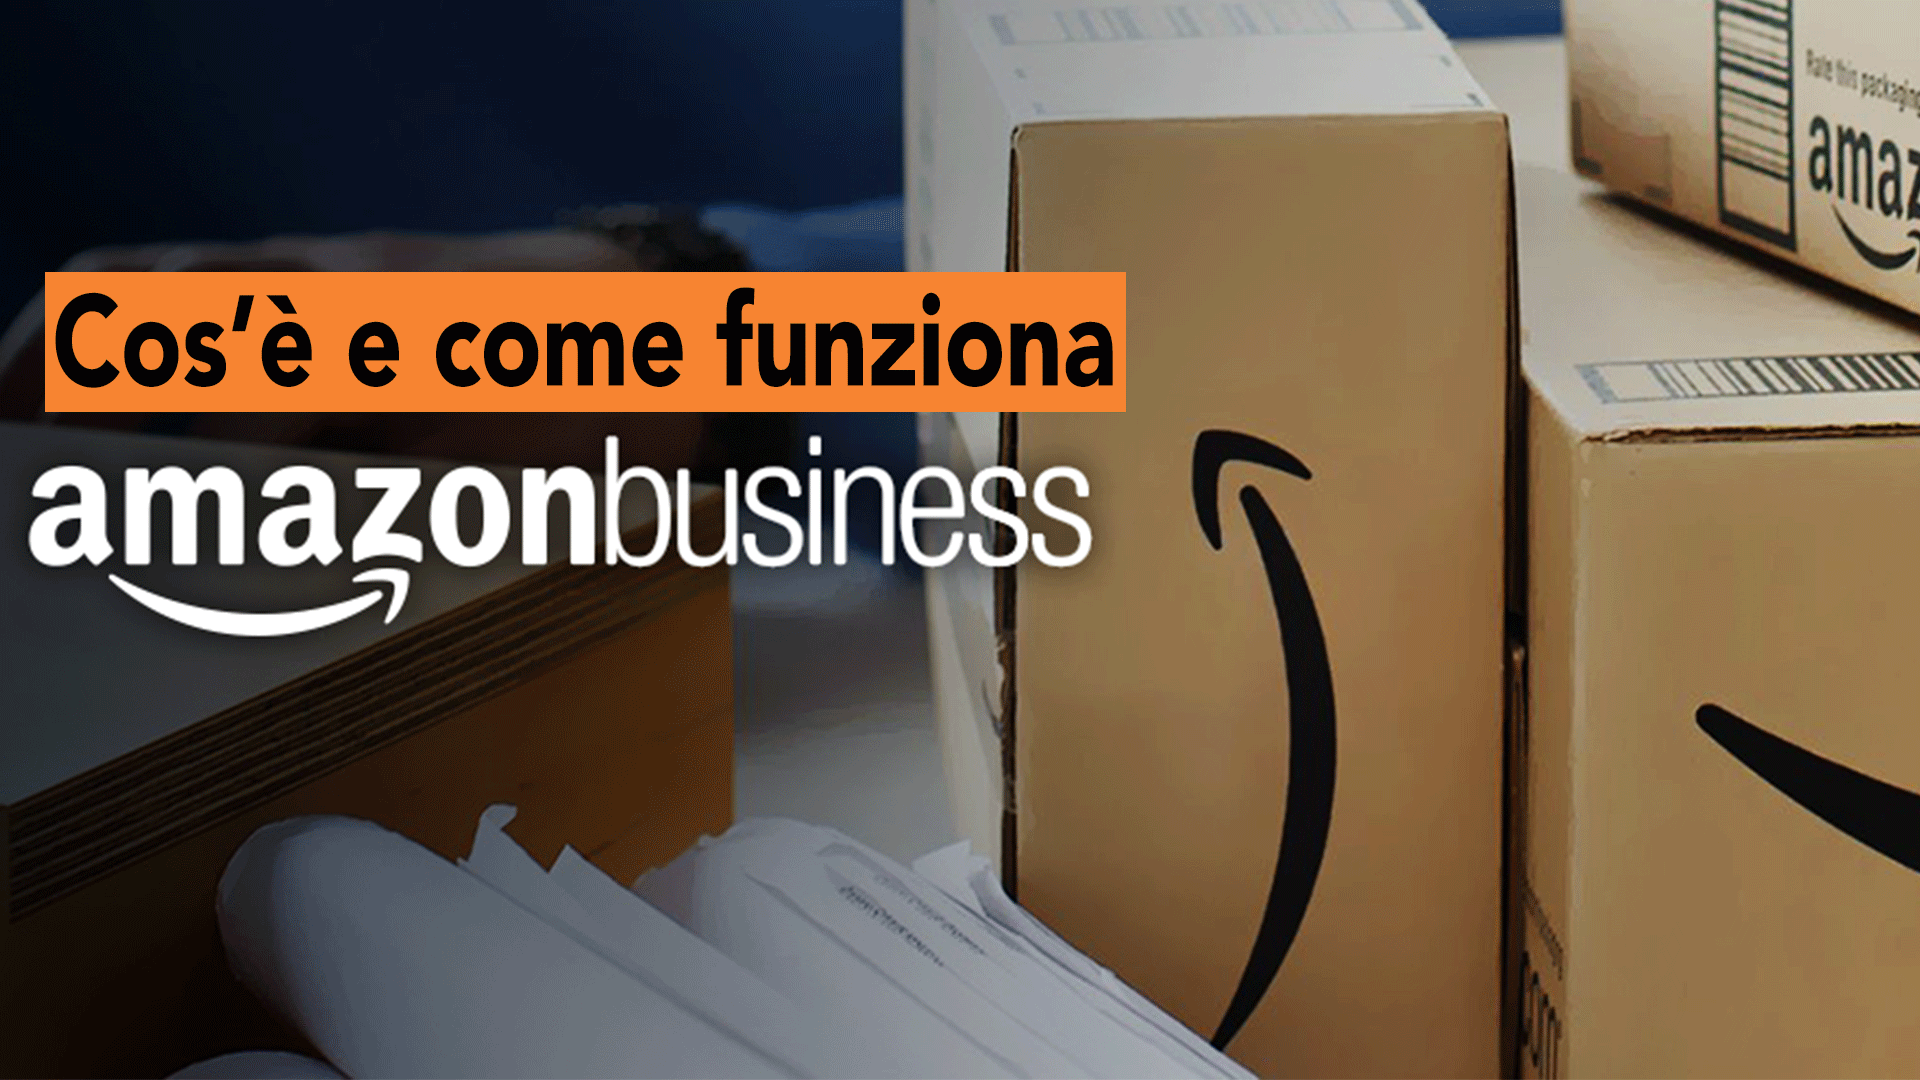 cerco chi si occupa di vendere su amazon